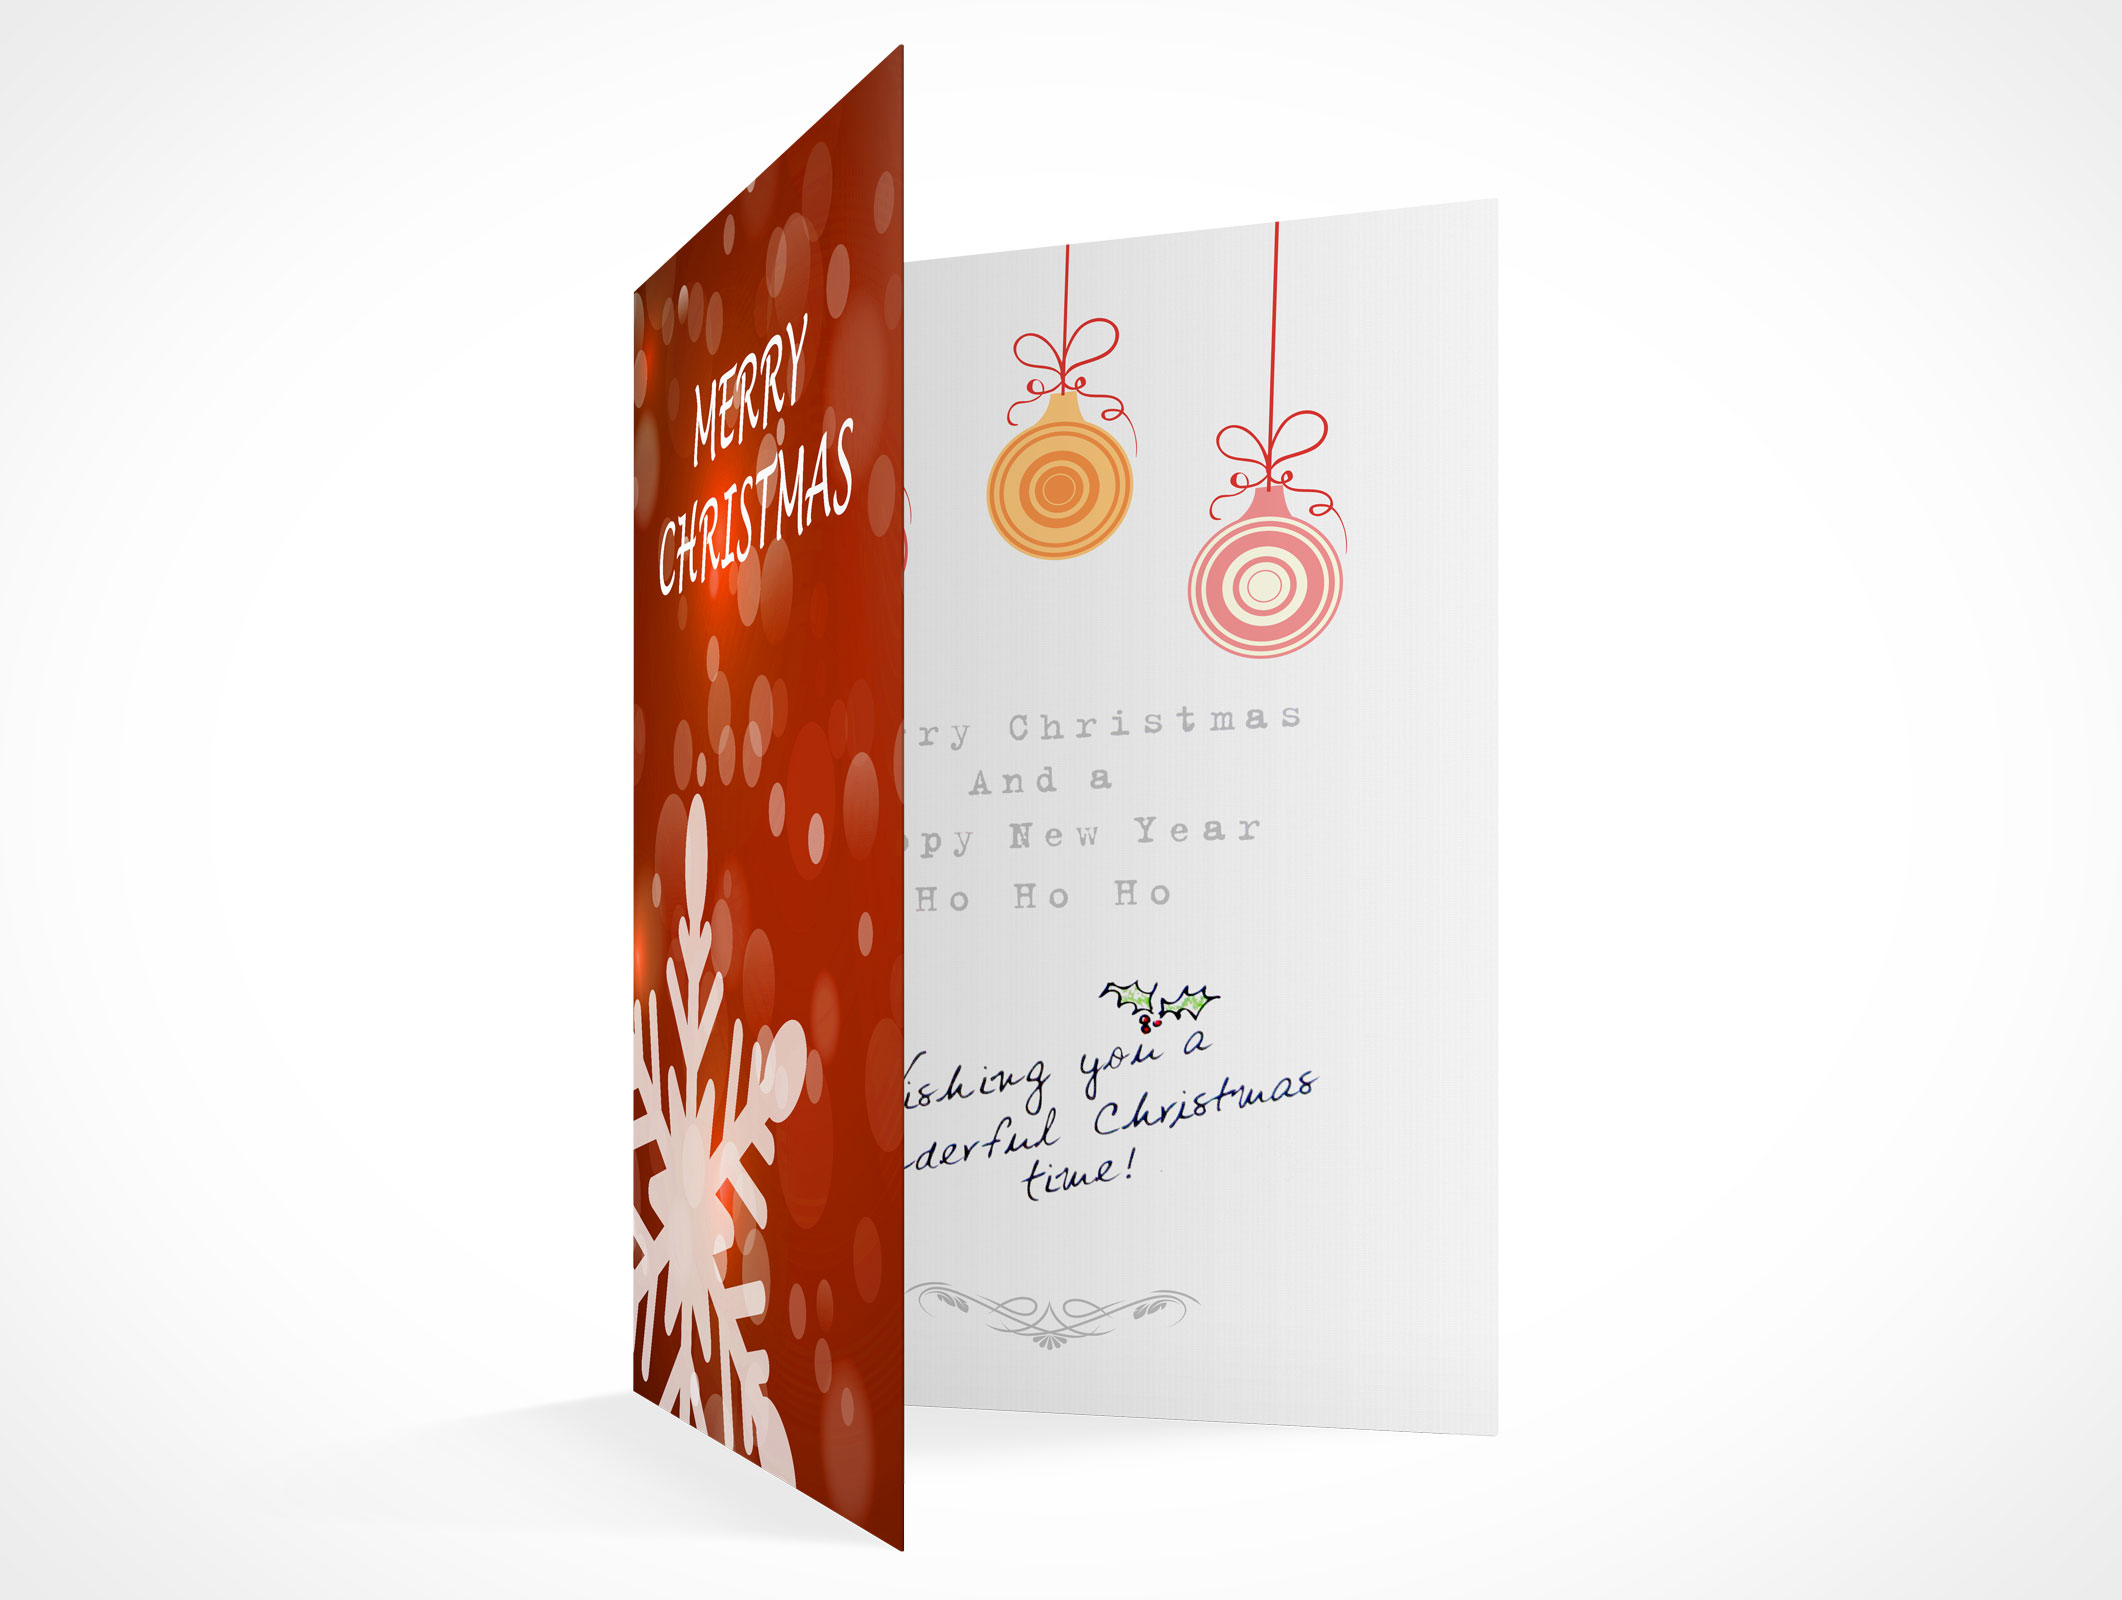 Blank holiday christmas greeting card mockups psd mockups blank holiday christmas greeting card template mockups m4hsunfo